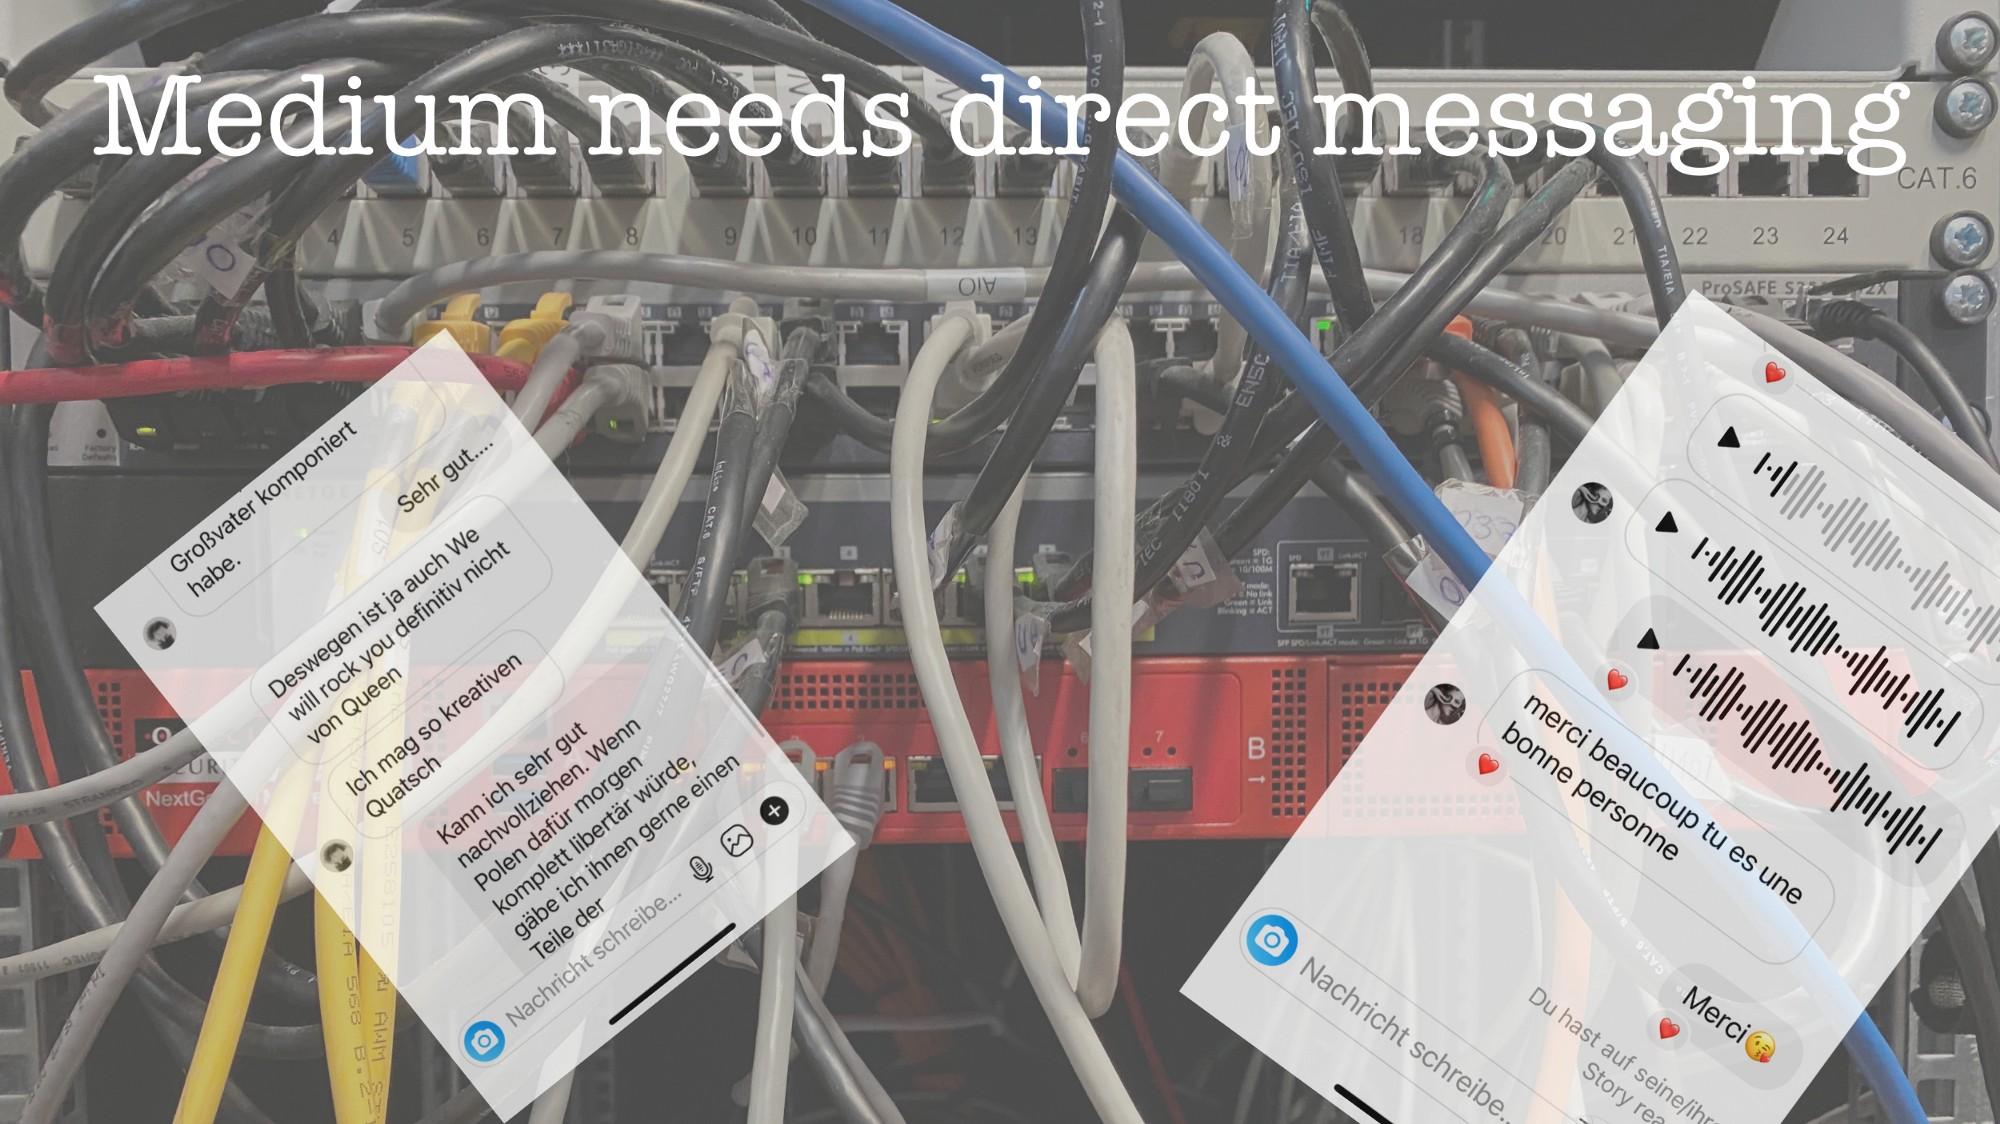 Medium needs direct messaging. It's very convenient to help people connect.